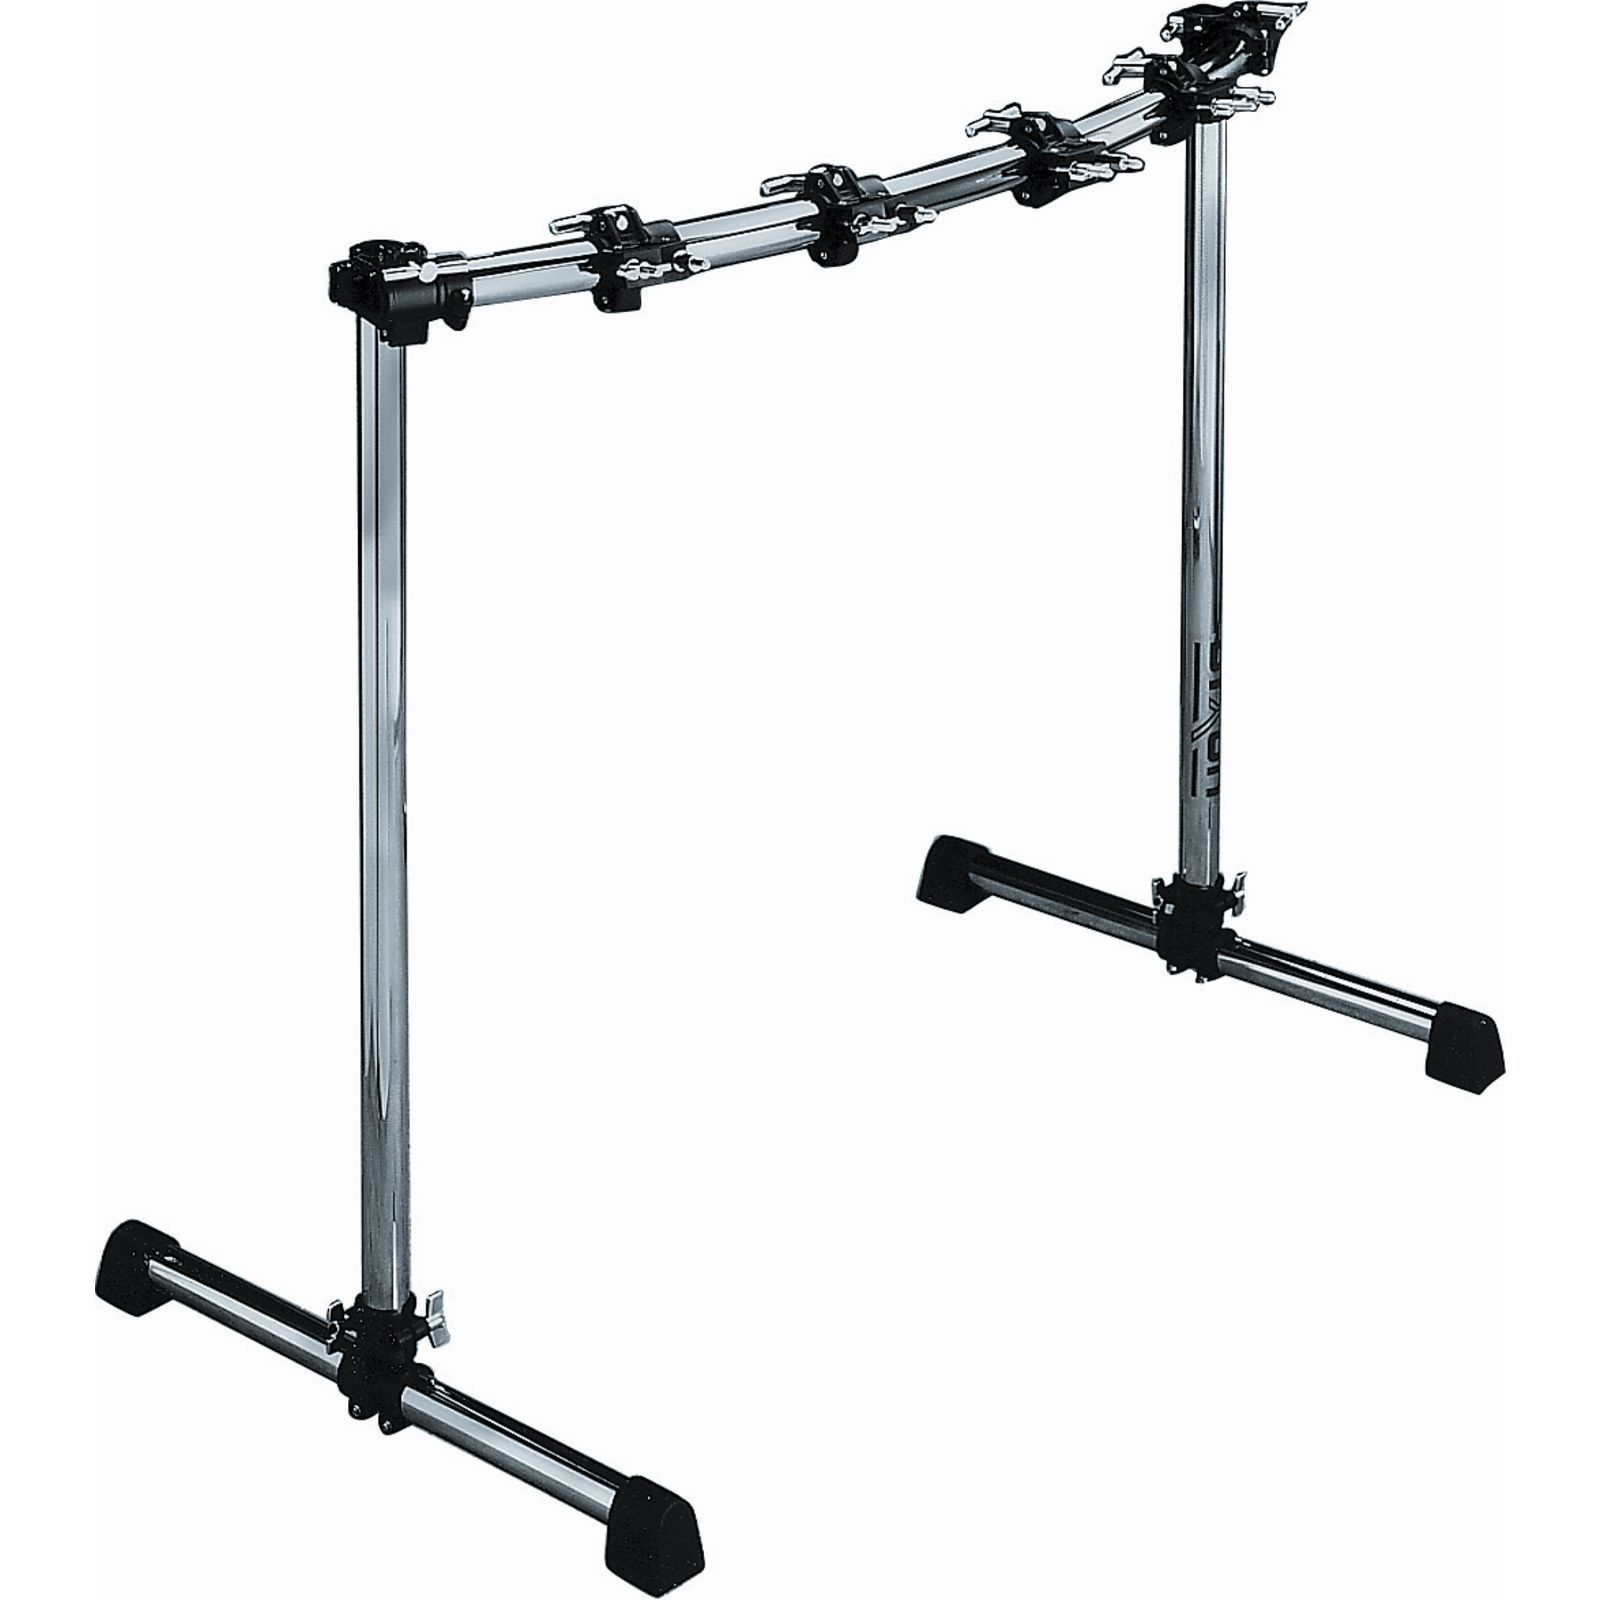 Dixon Drum Rack PSO-80, curved front bar Produktbillede